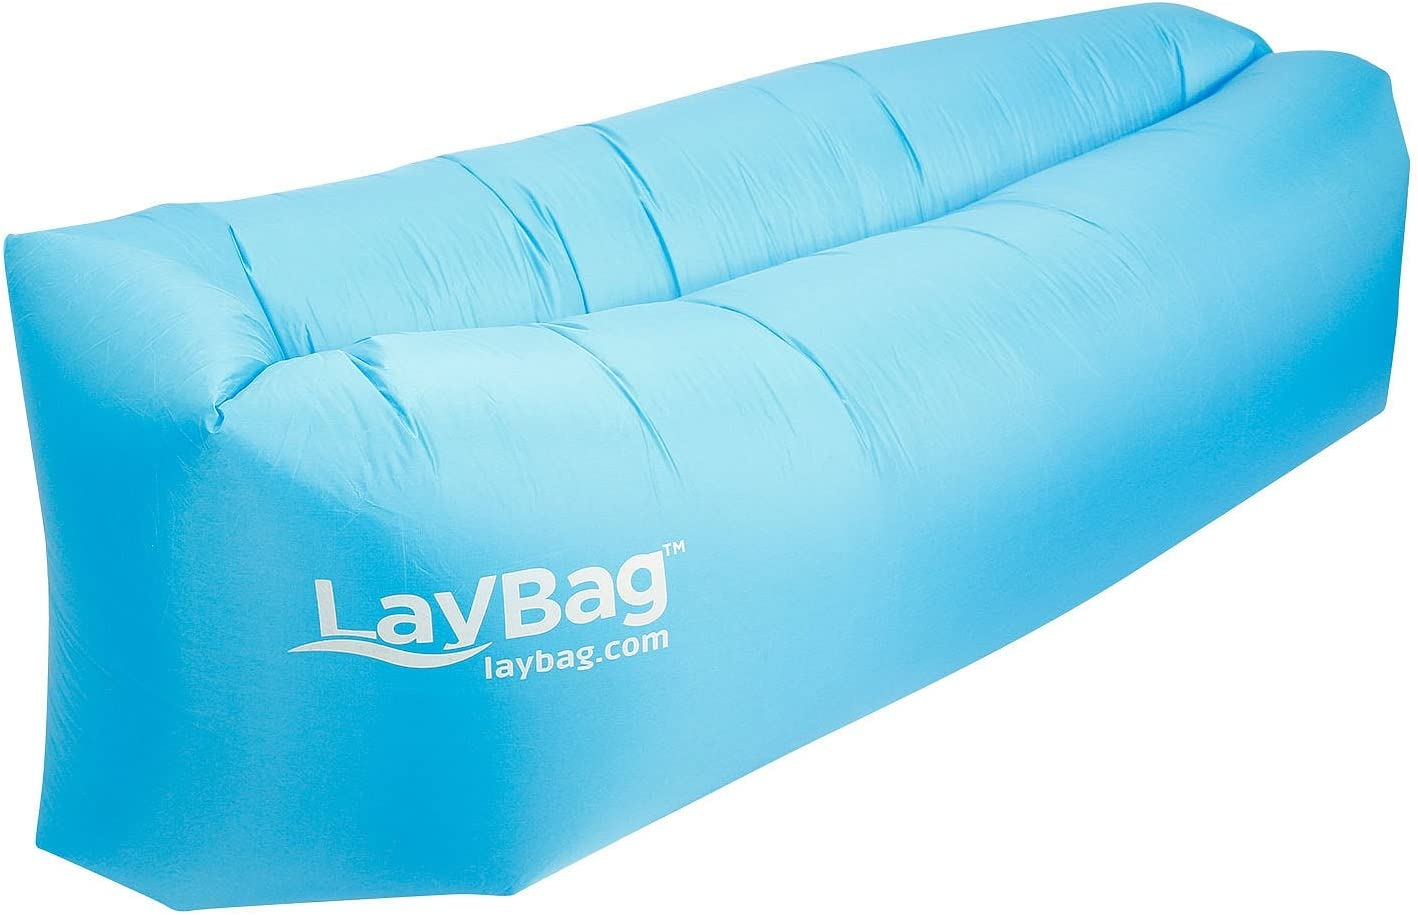 Amazon.com: laybag Lounge de aire inflable, Azul: Toys & Games